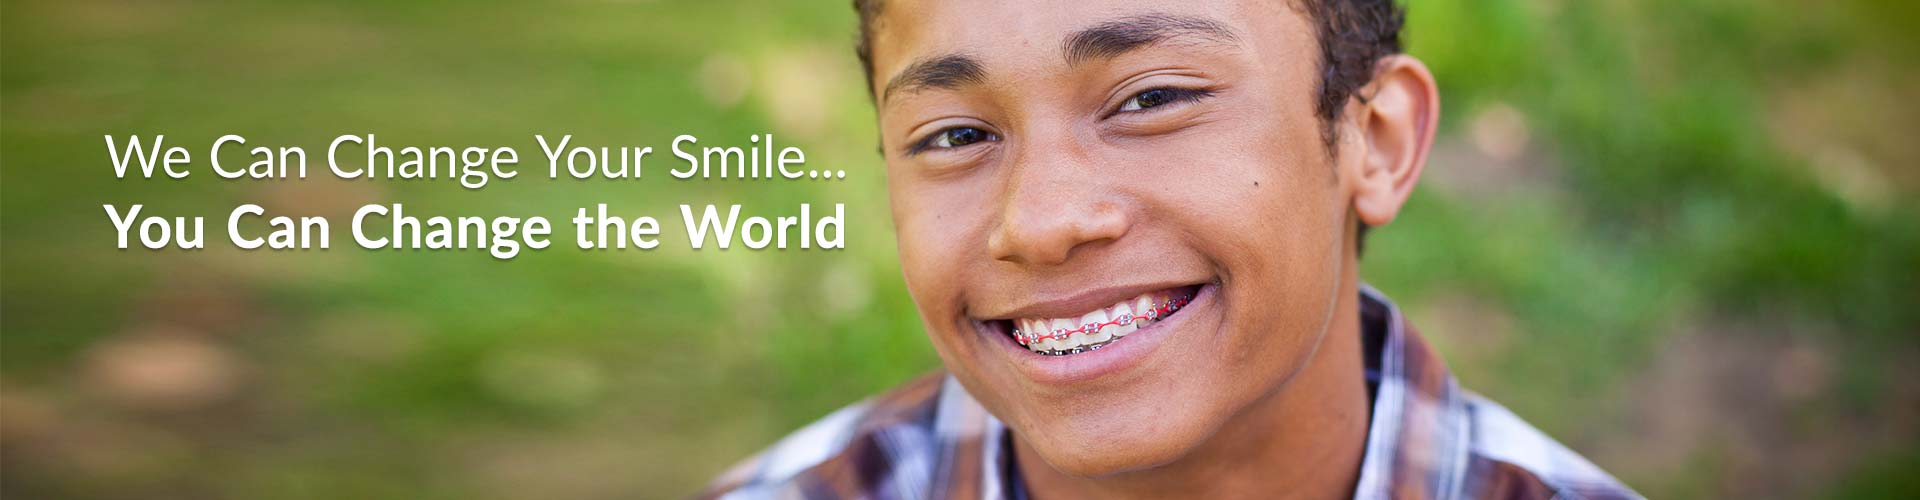 Tenn Boy with Braces Mountain View Orthodontics Longmont Berthoud CO